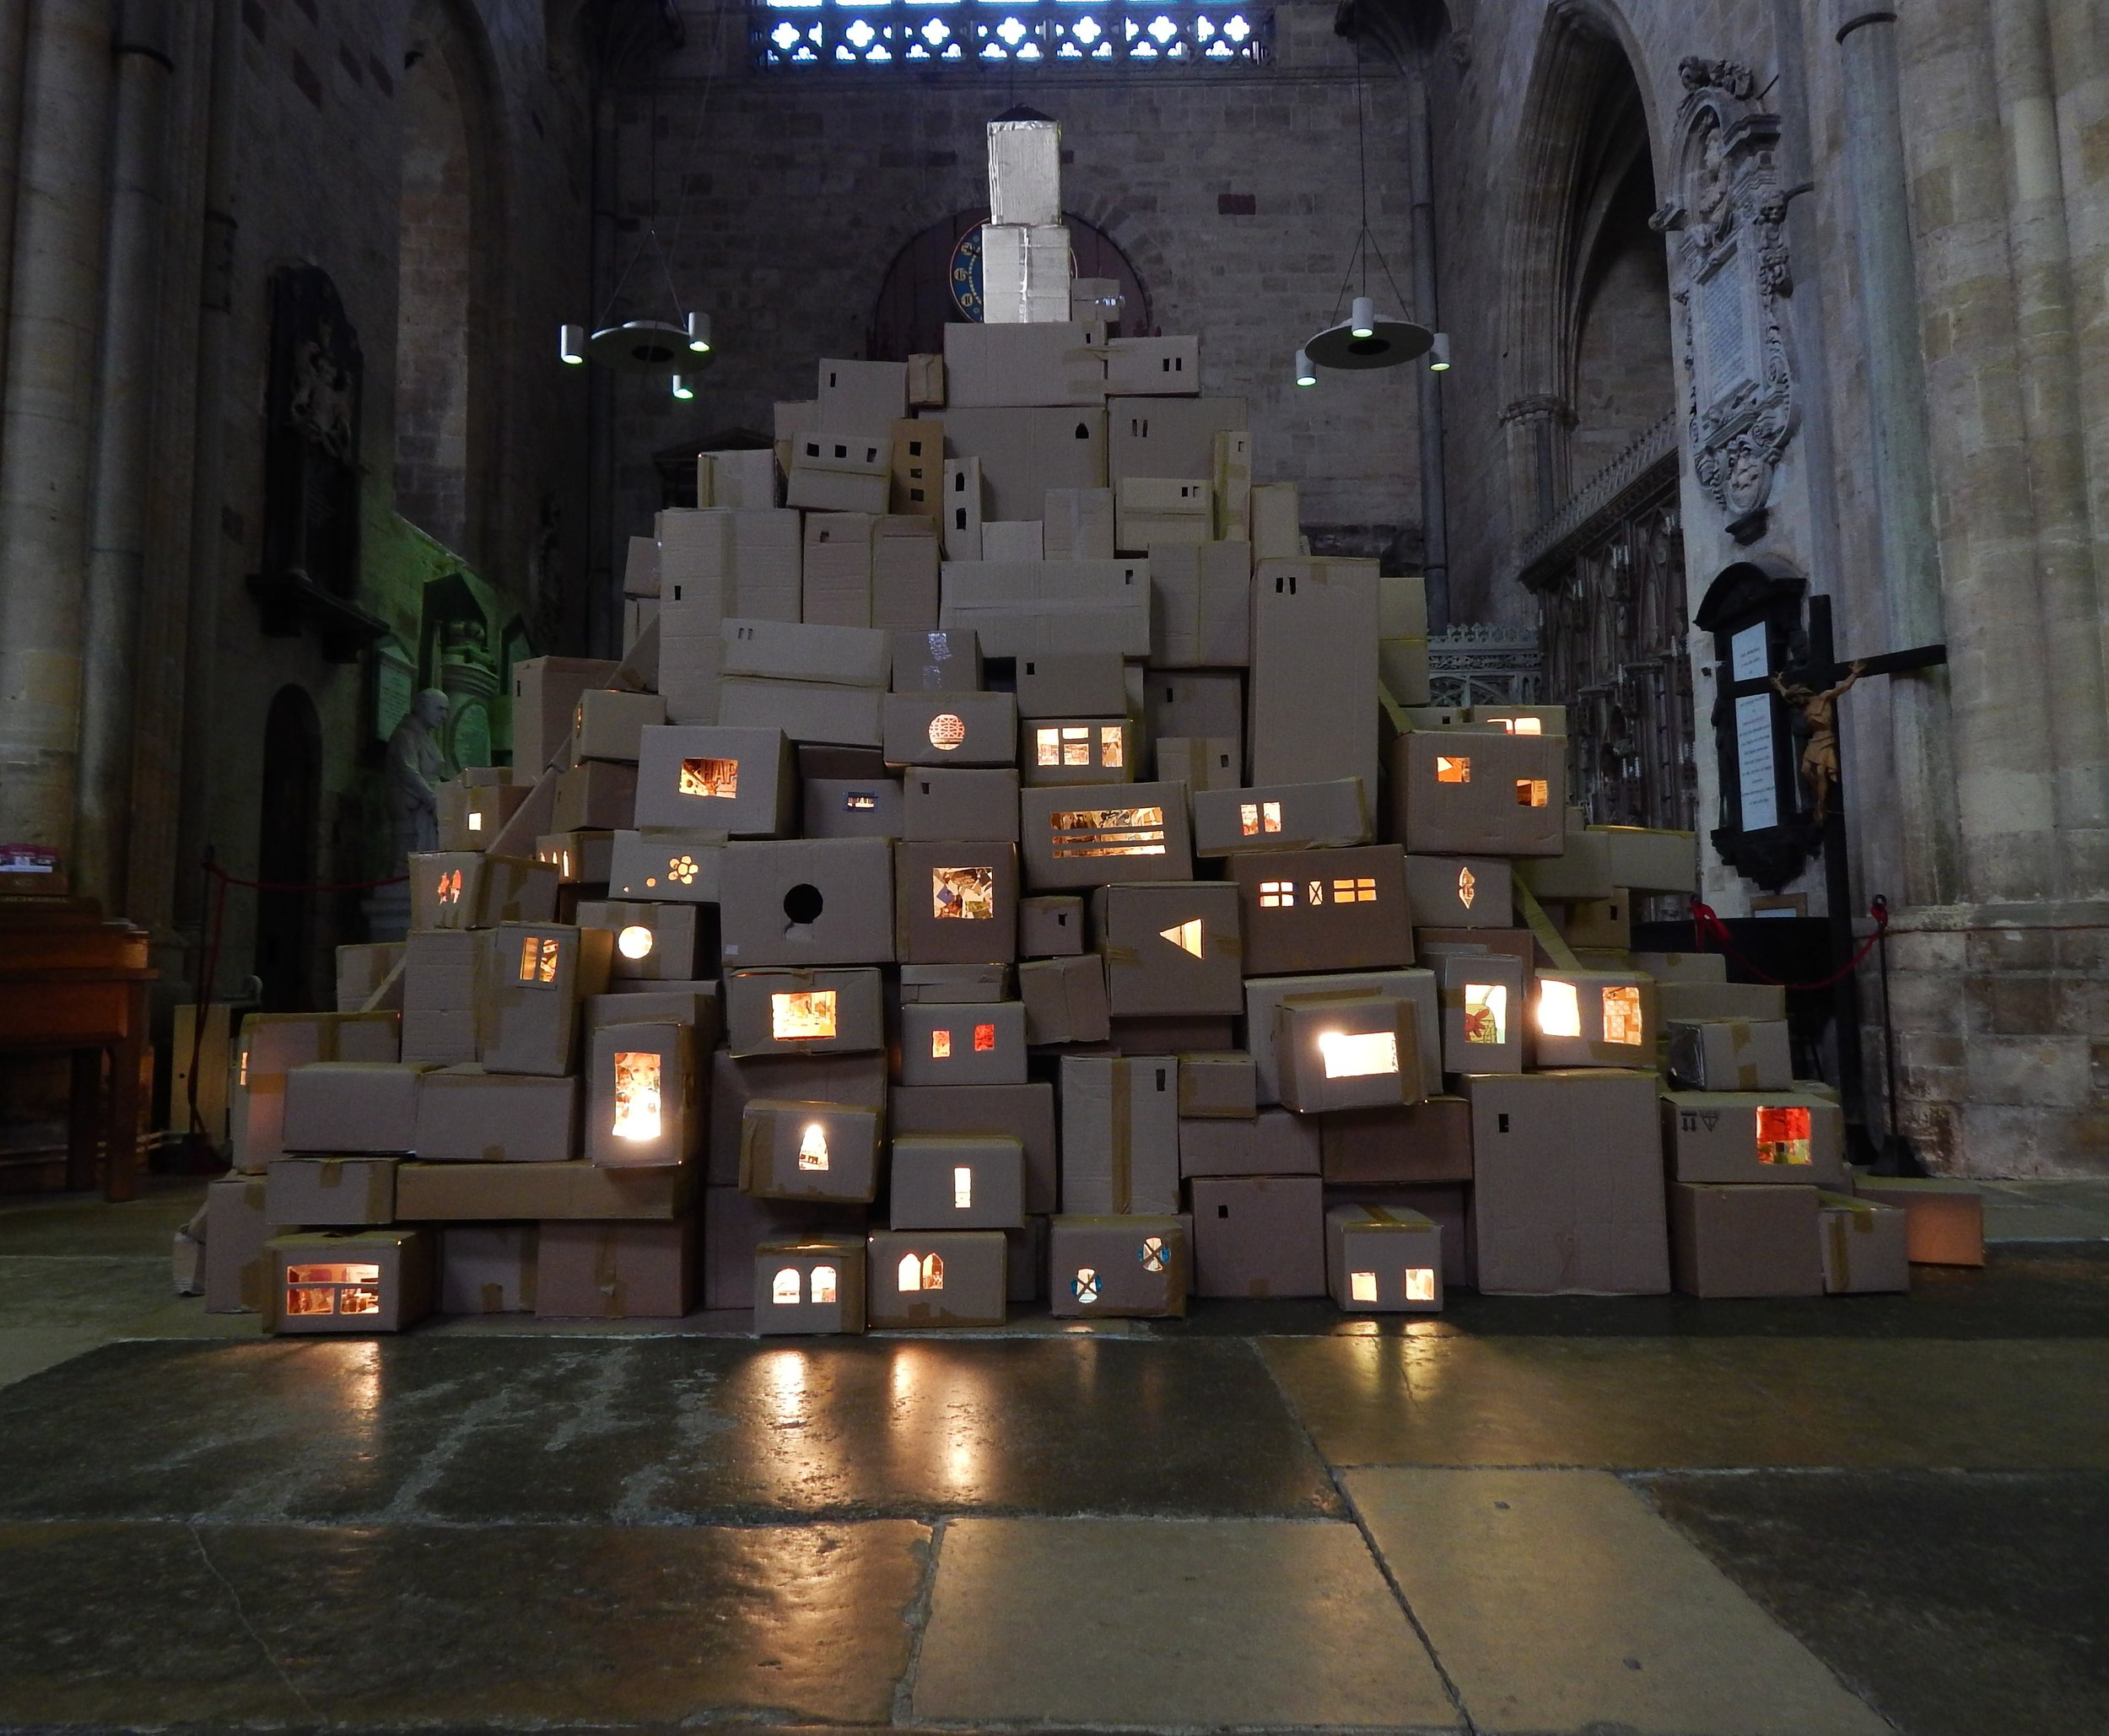 Robin Doyle's 'We Built This City', exhibited at Exeter Cathedral during Art Week 2018. Photo by Jez Winship.